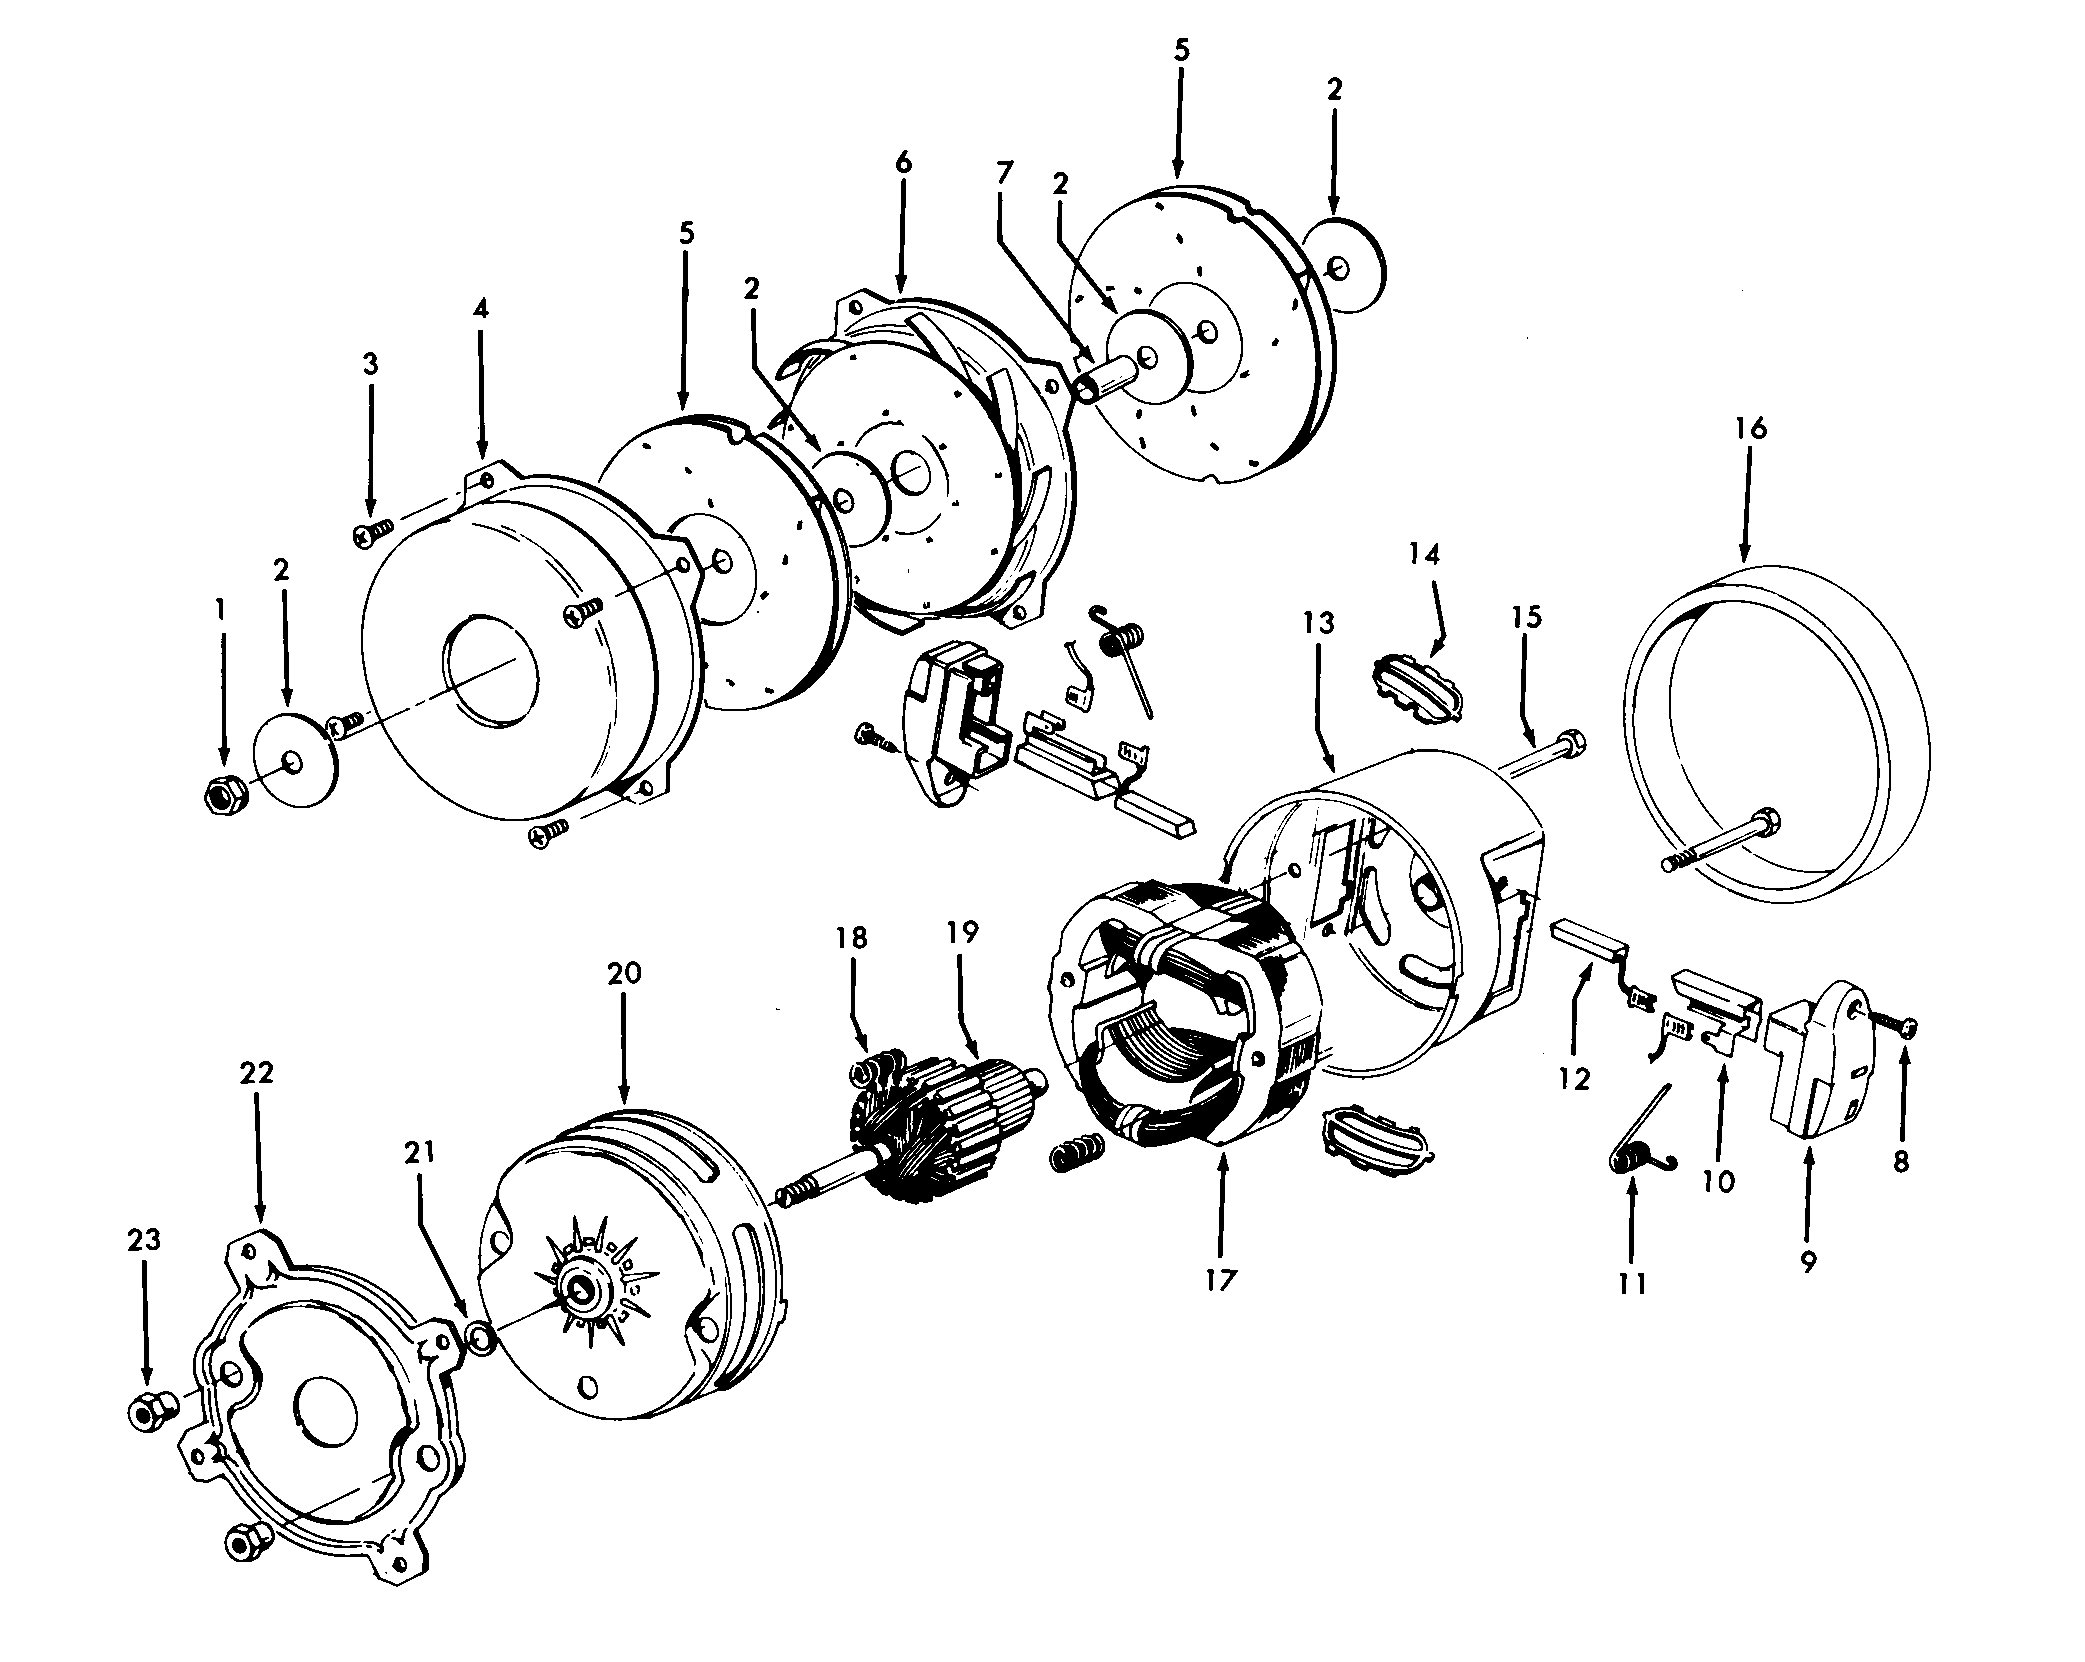 Hoover S3261--- motor assembly diagram